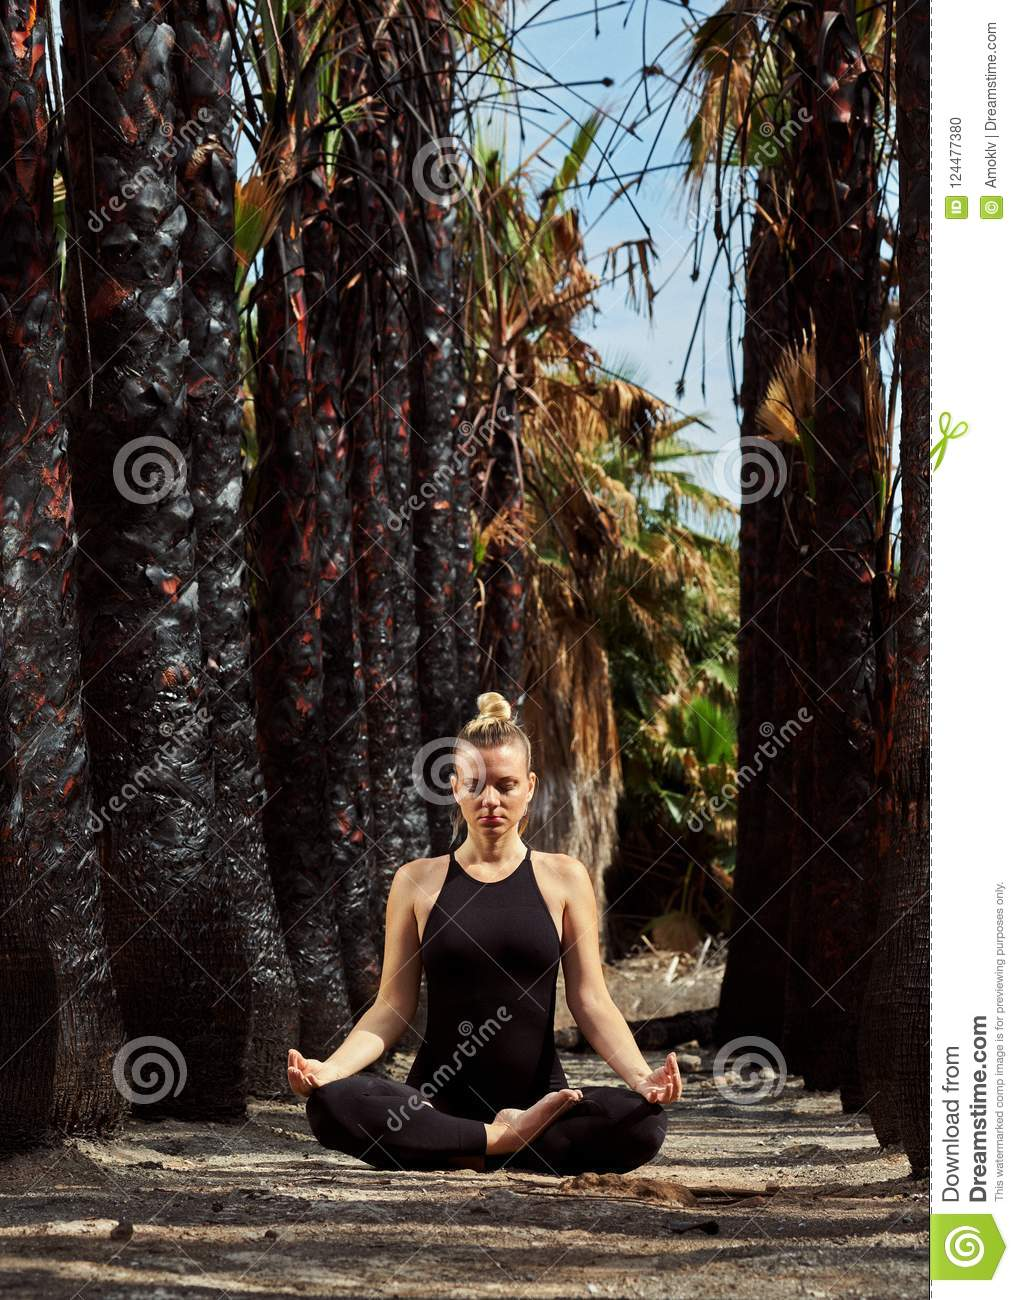 Young Beautiful Woman Doing Meditation In Nature Stock Photo Image Of Chakra Asana 124477380